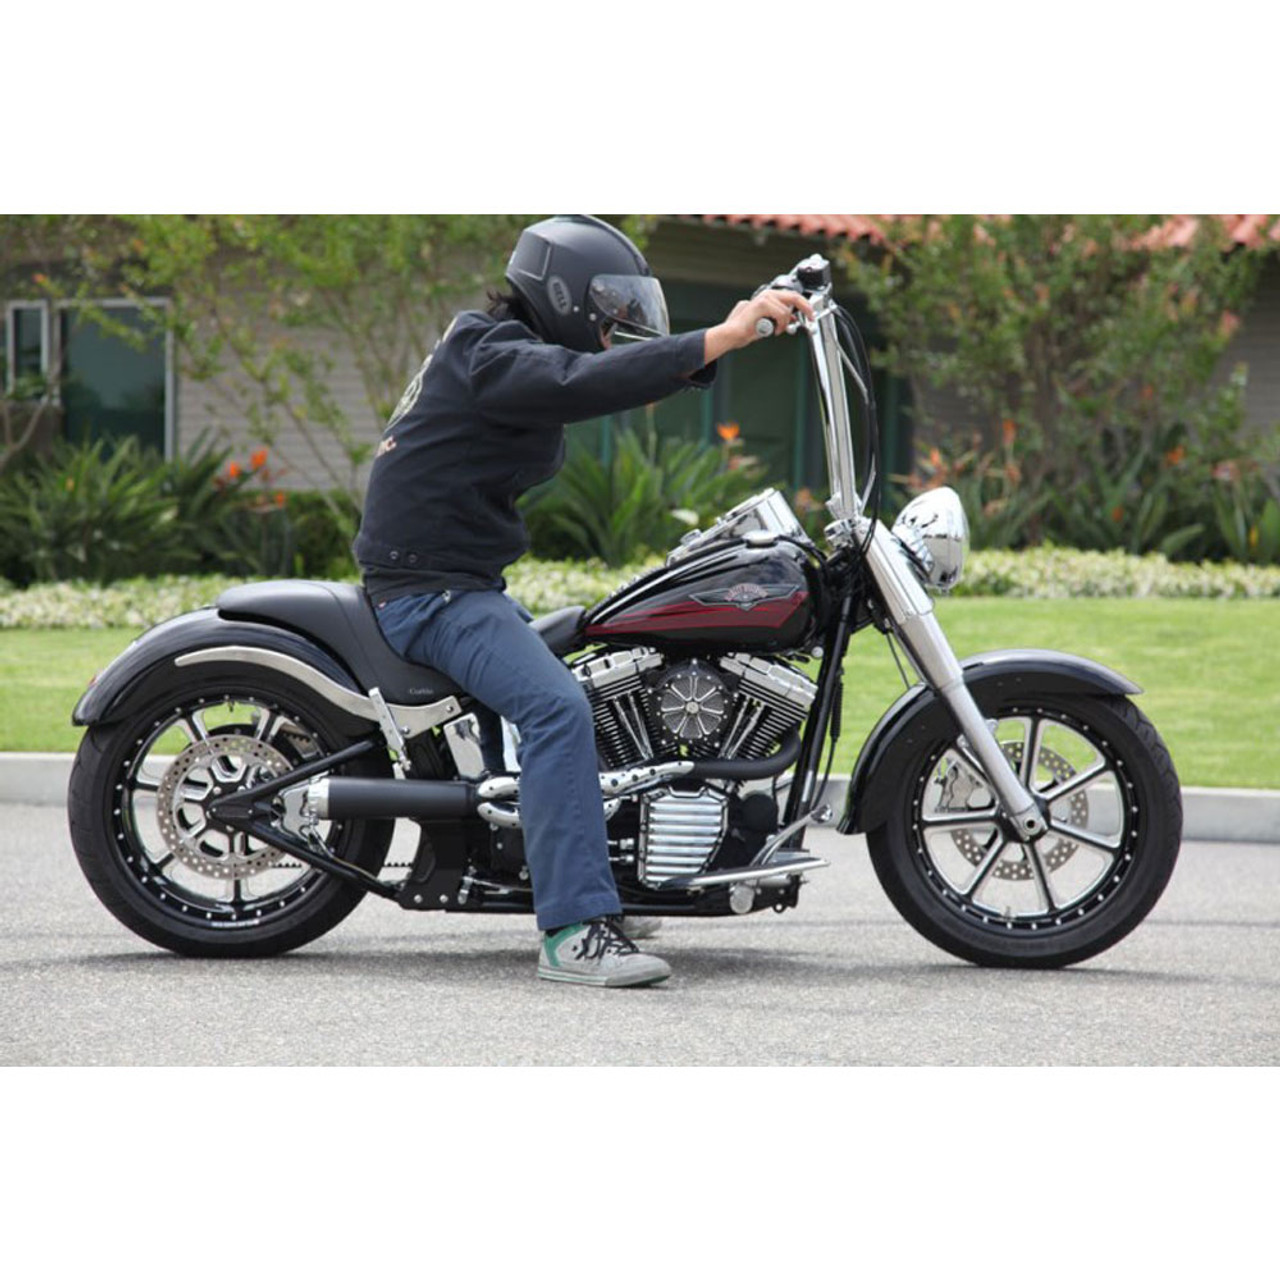 Roland Sands 1 4 King Ape Hangers Handlebars For Harley